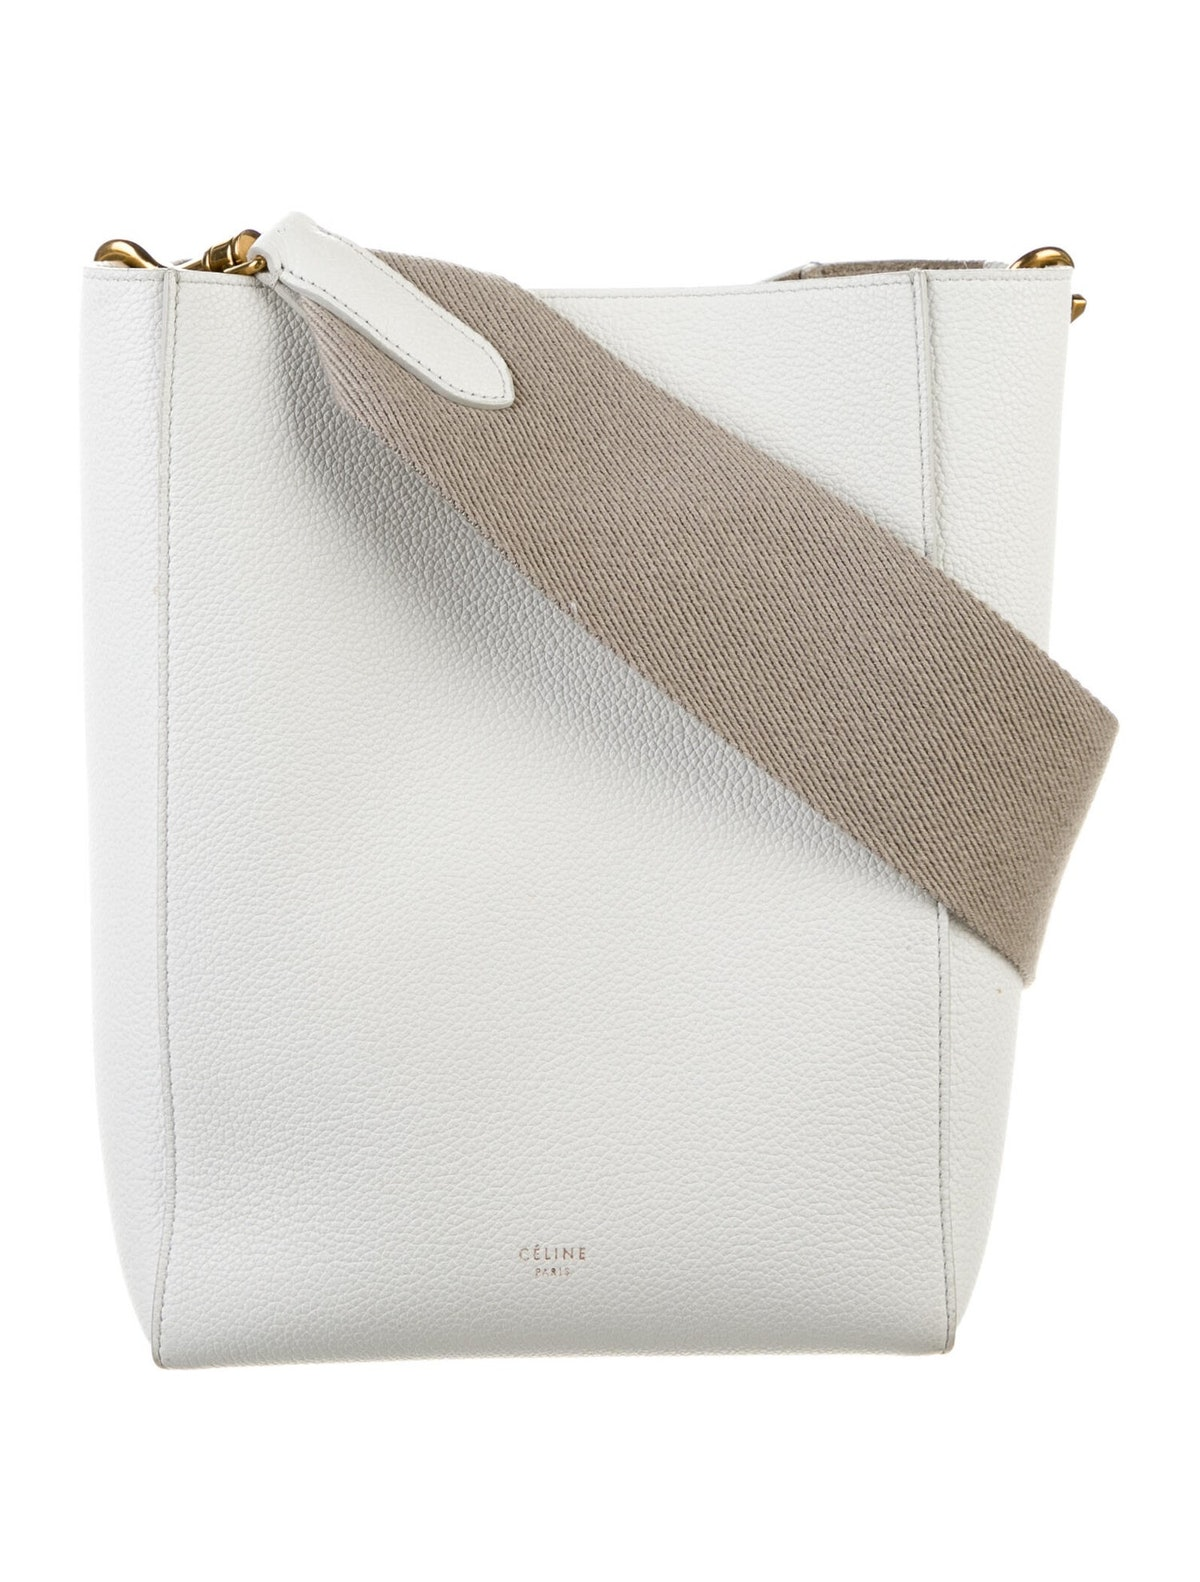 Small Seau Sangle Bucket Bag from Celine, available to shop second-hand via The RealReal.